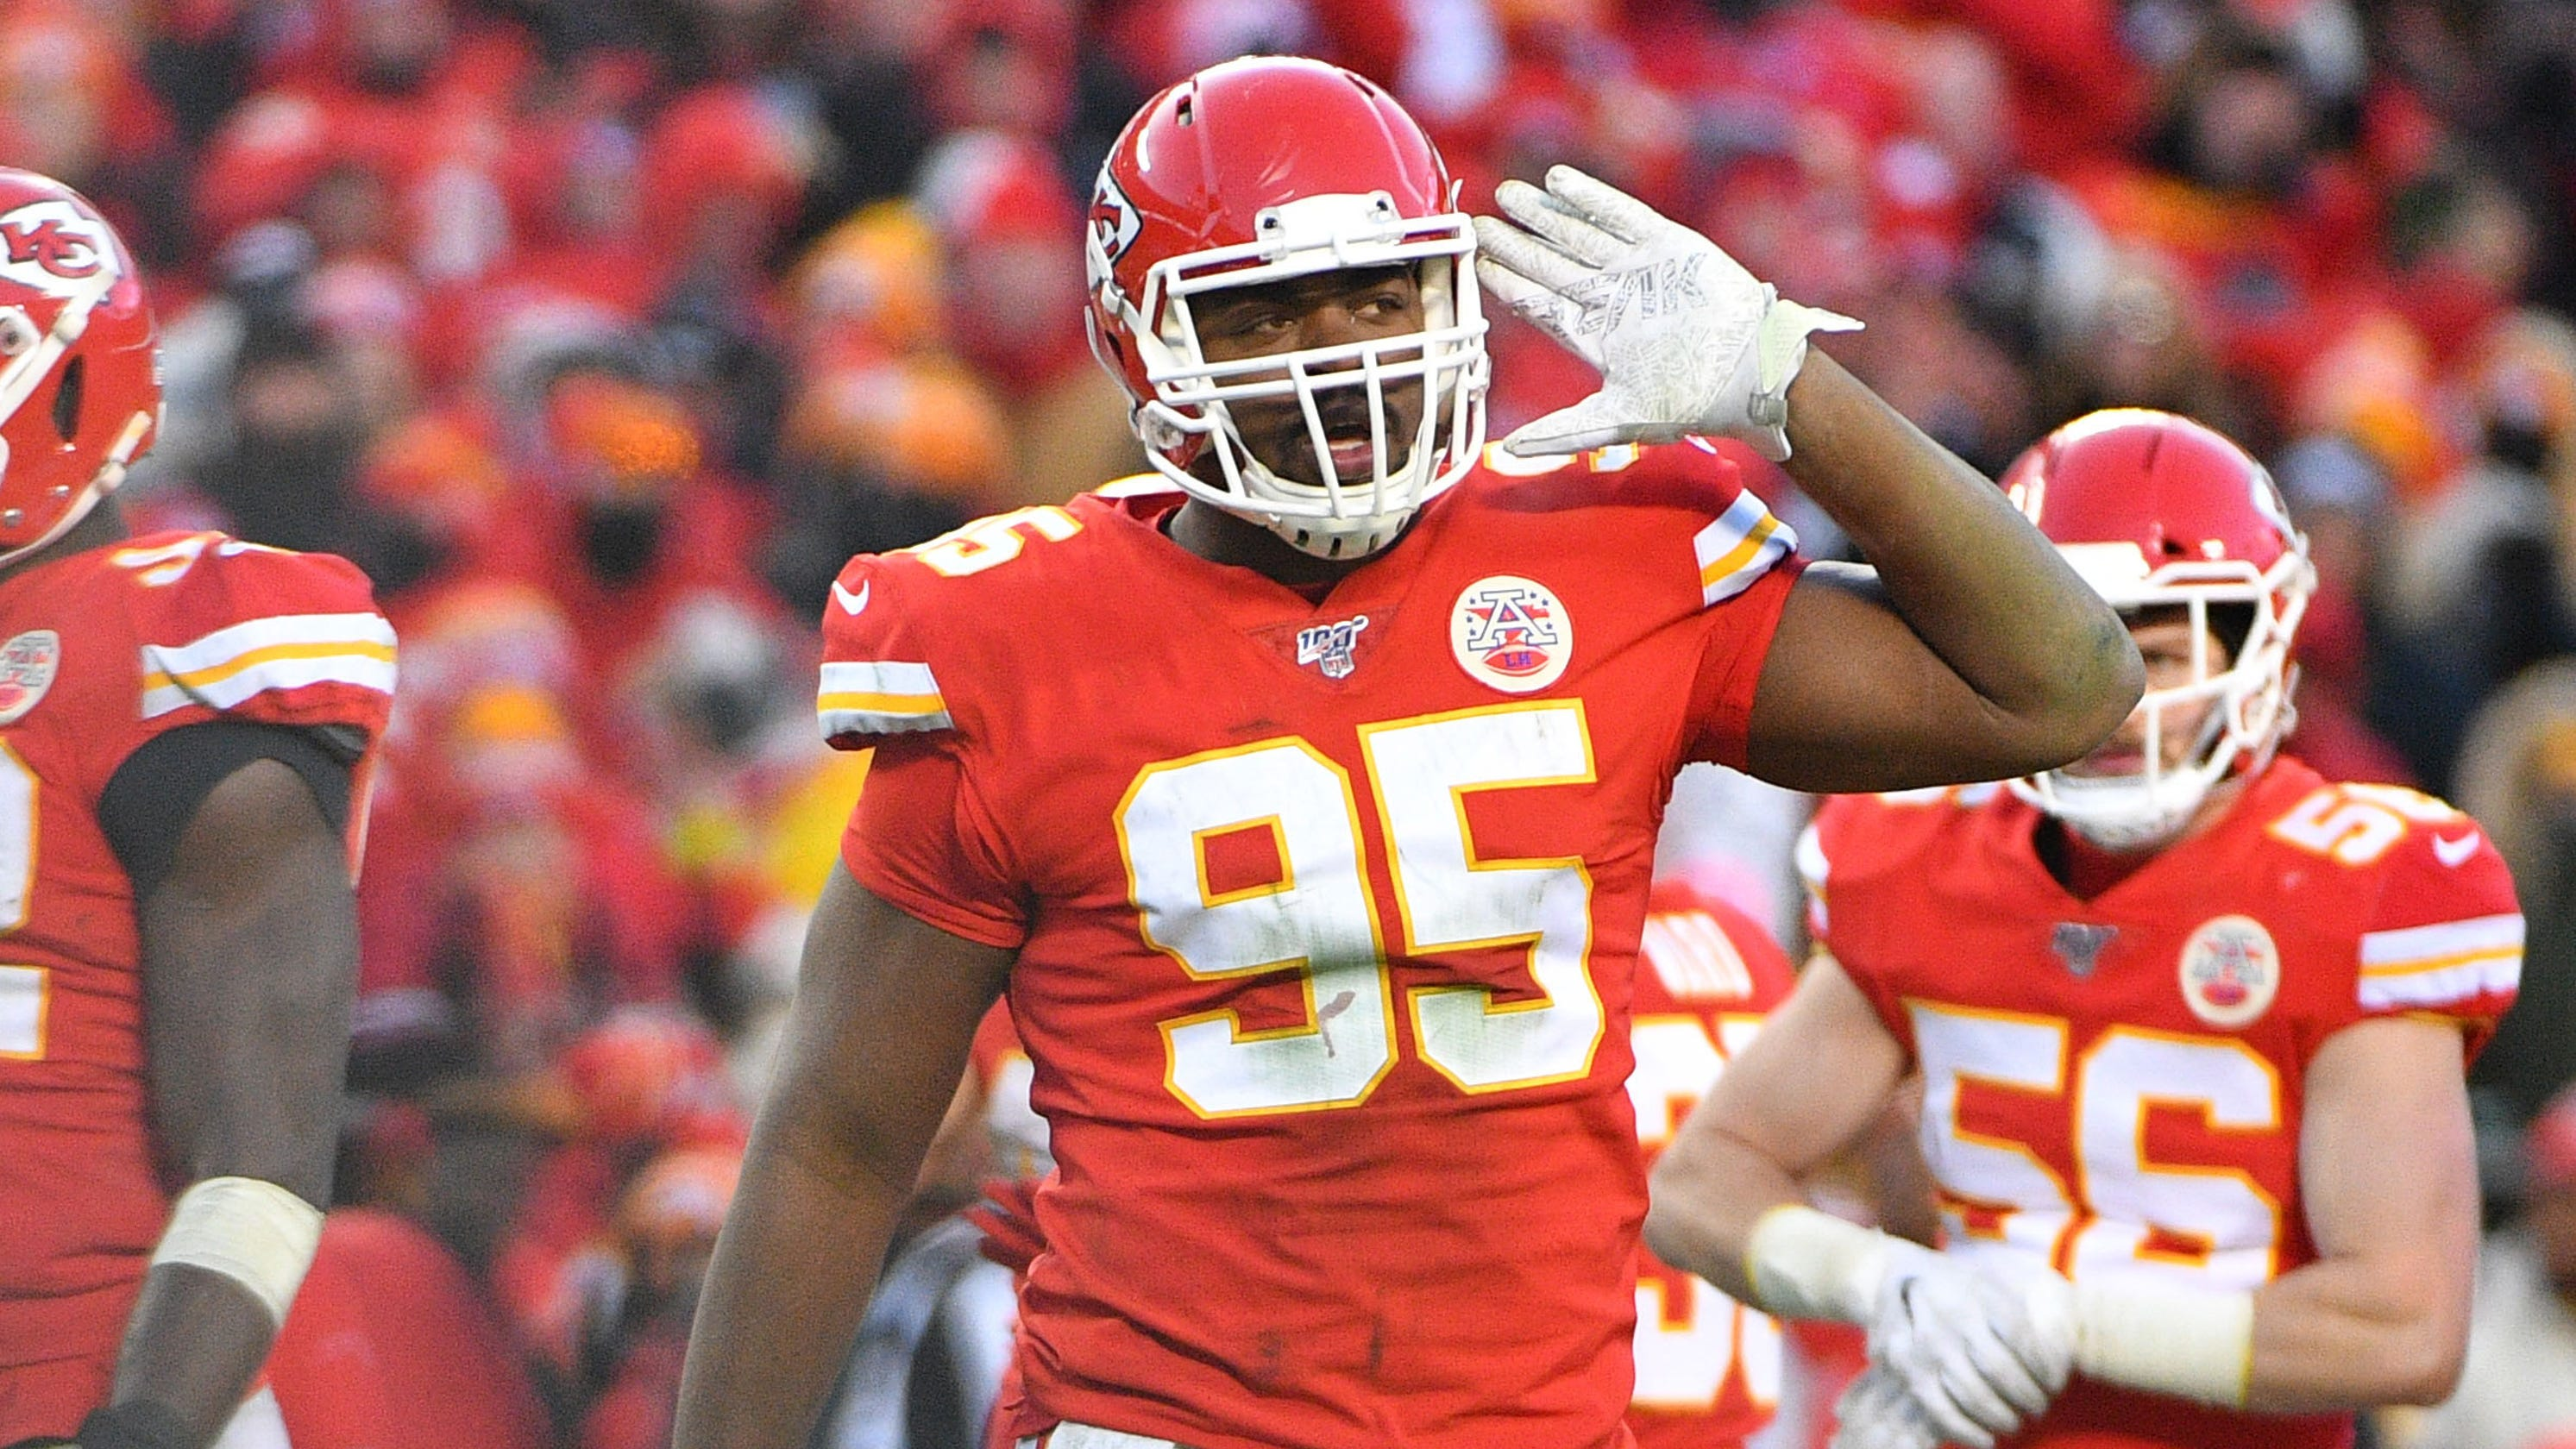 Kansas City Chiefs' Chris Jones says he 'won't play' without new long-term contract